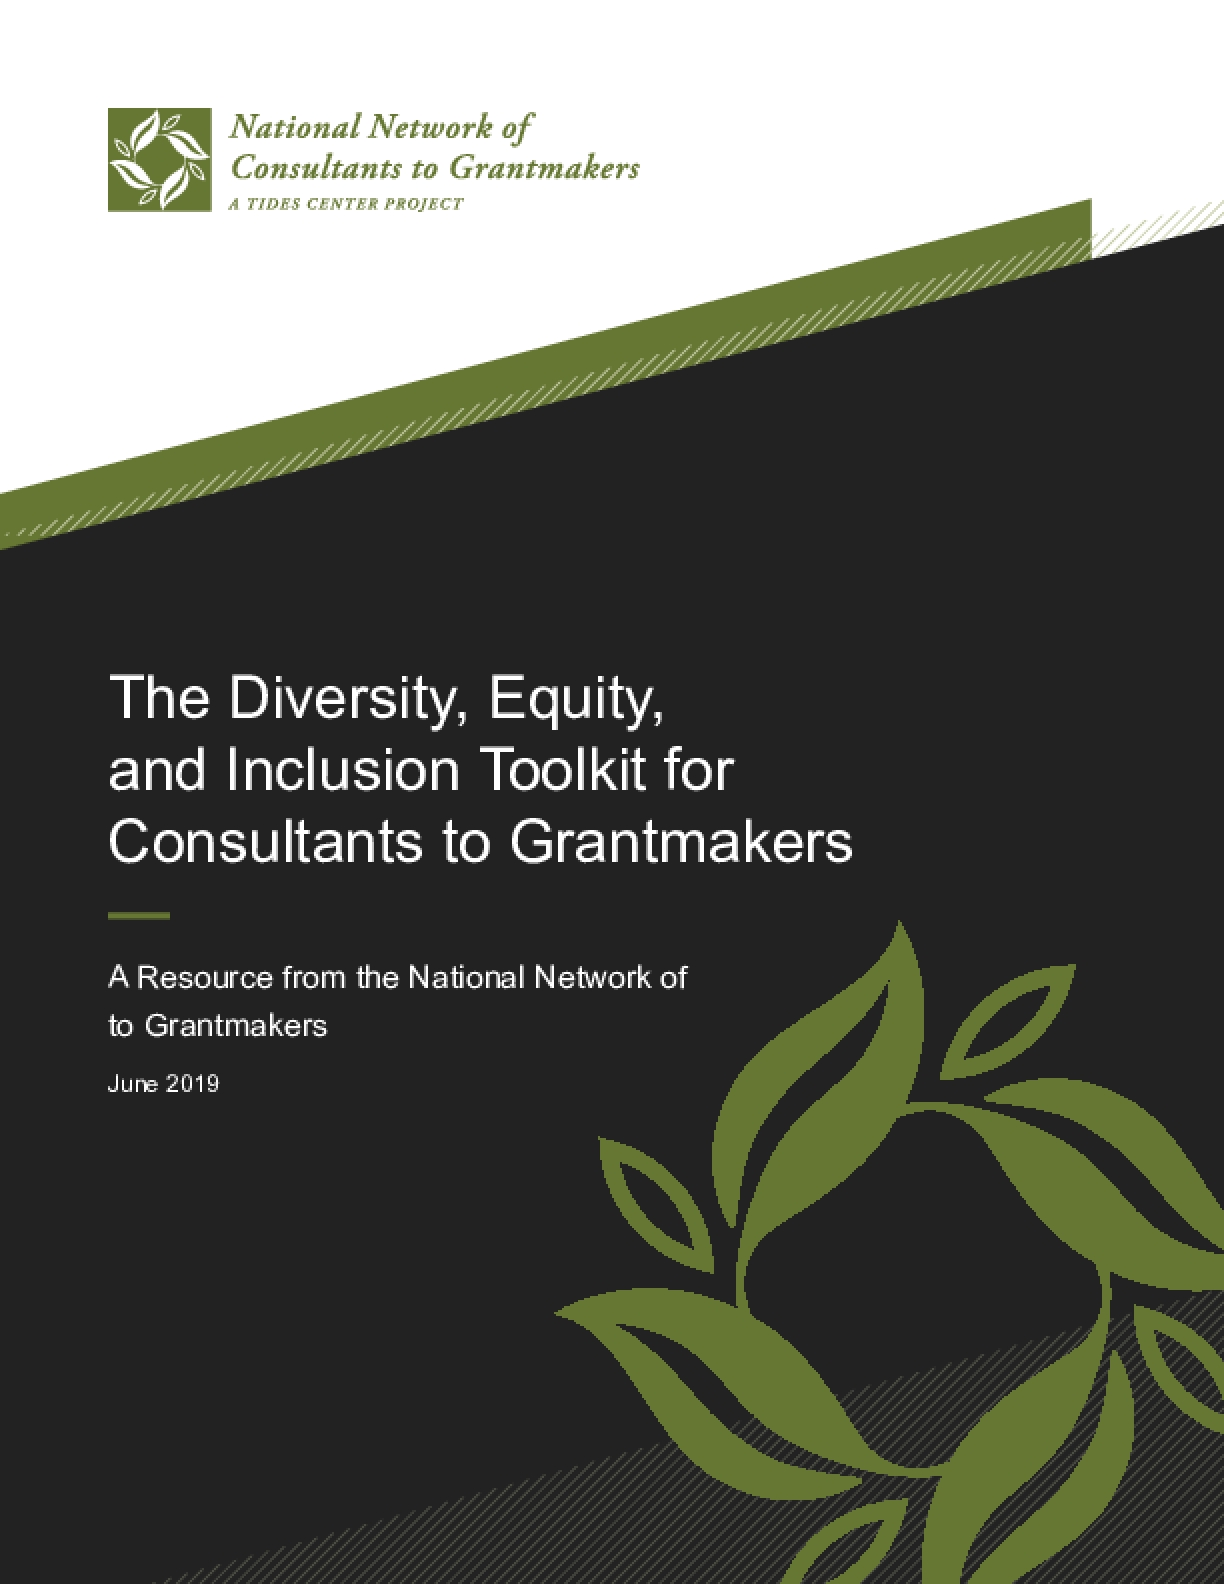 The Diversity, Equity, and Inclusion Toolkit for Consultants to Grantmakers